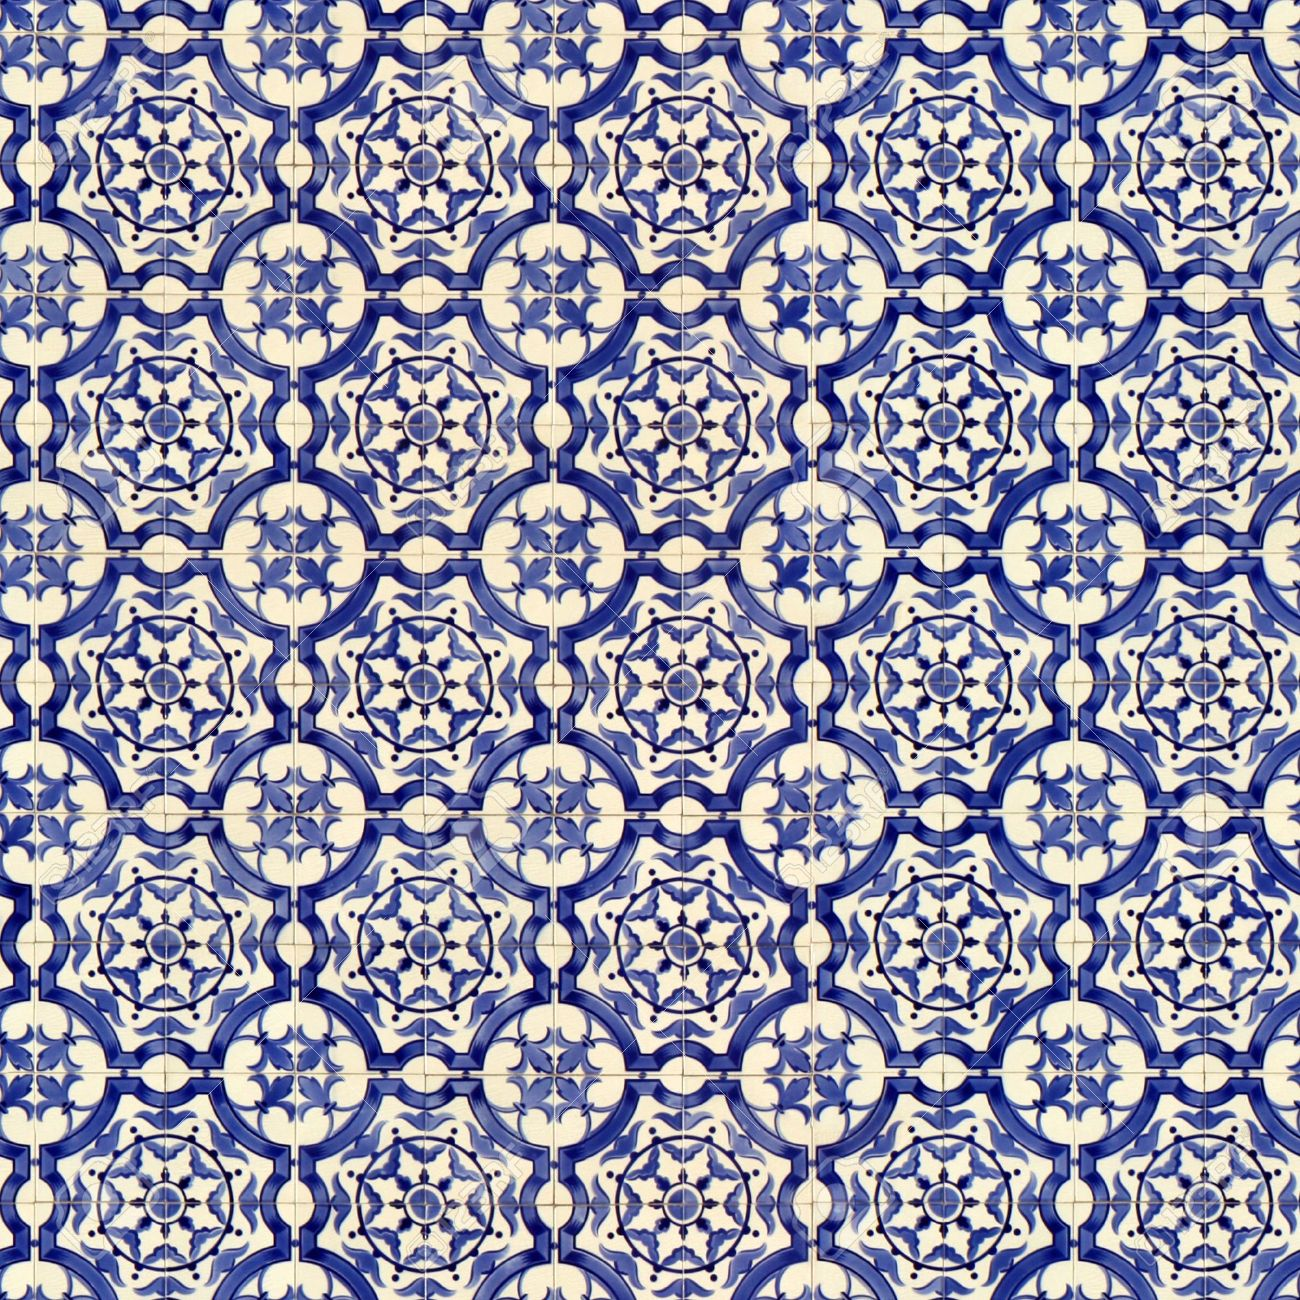 Seamless Tile Pattern Of Ancient Ceramic Tiles. This Is Seamless ...